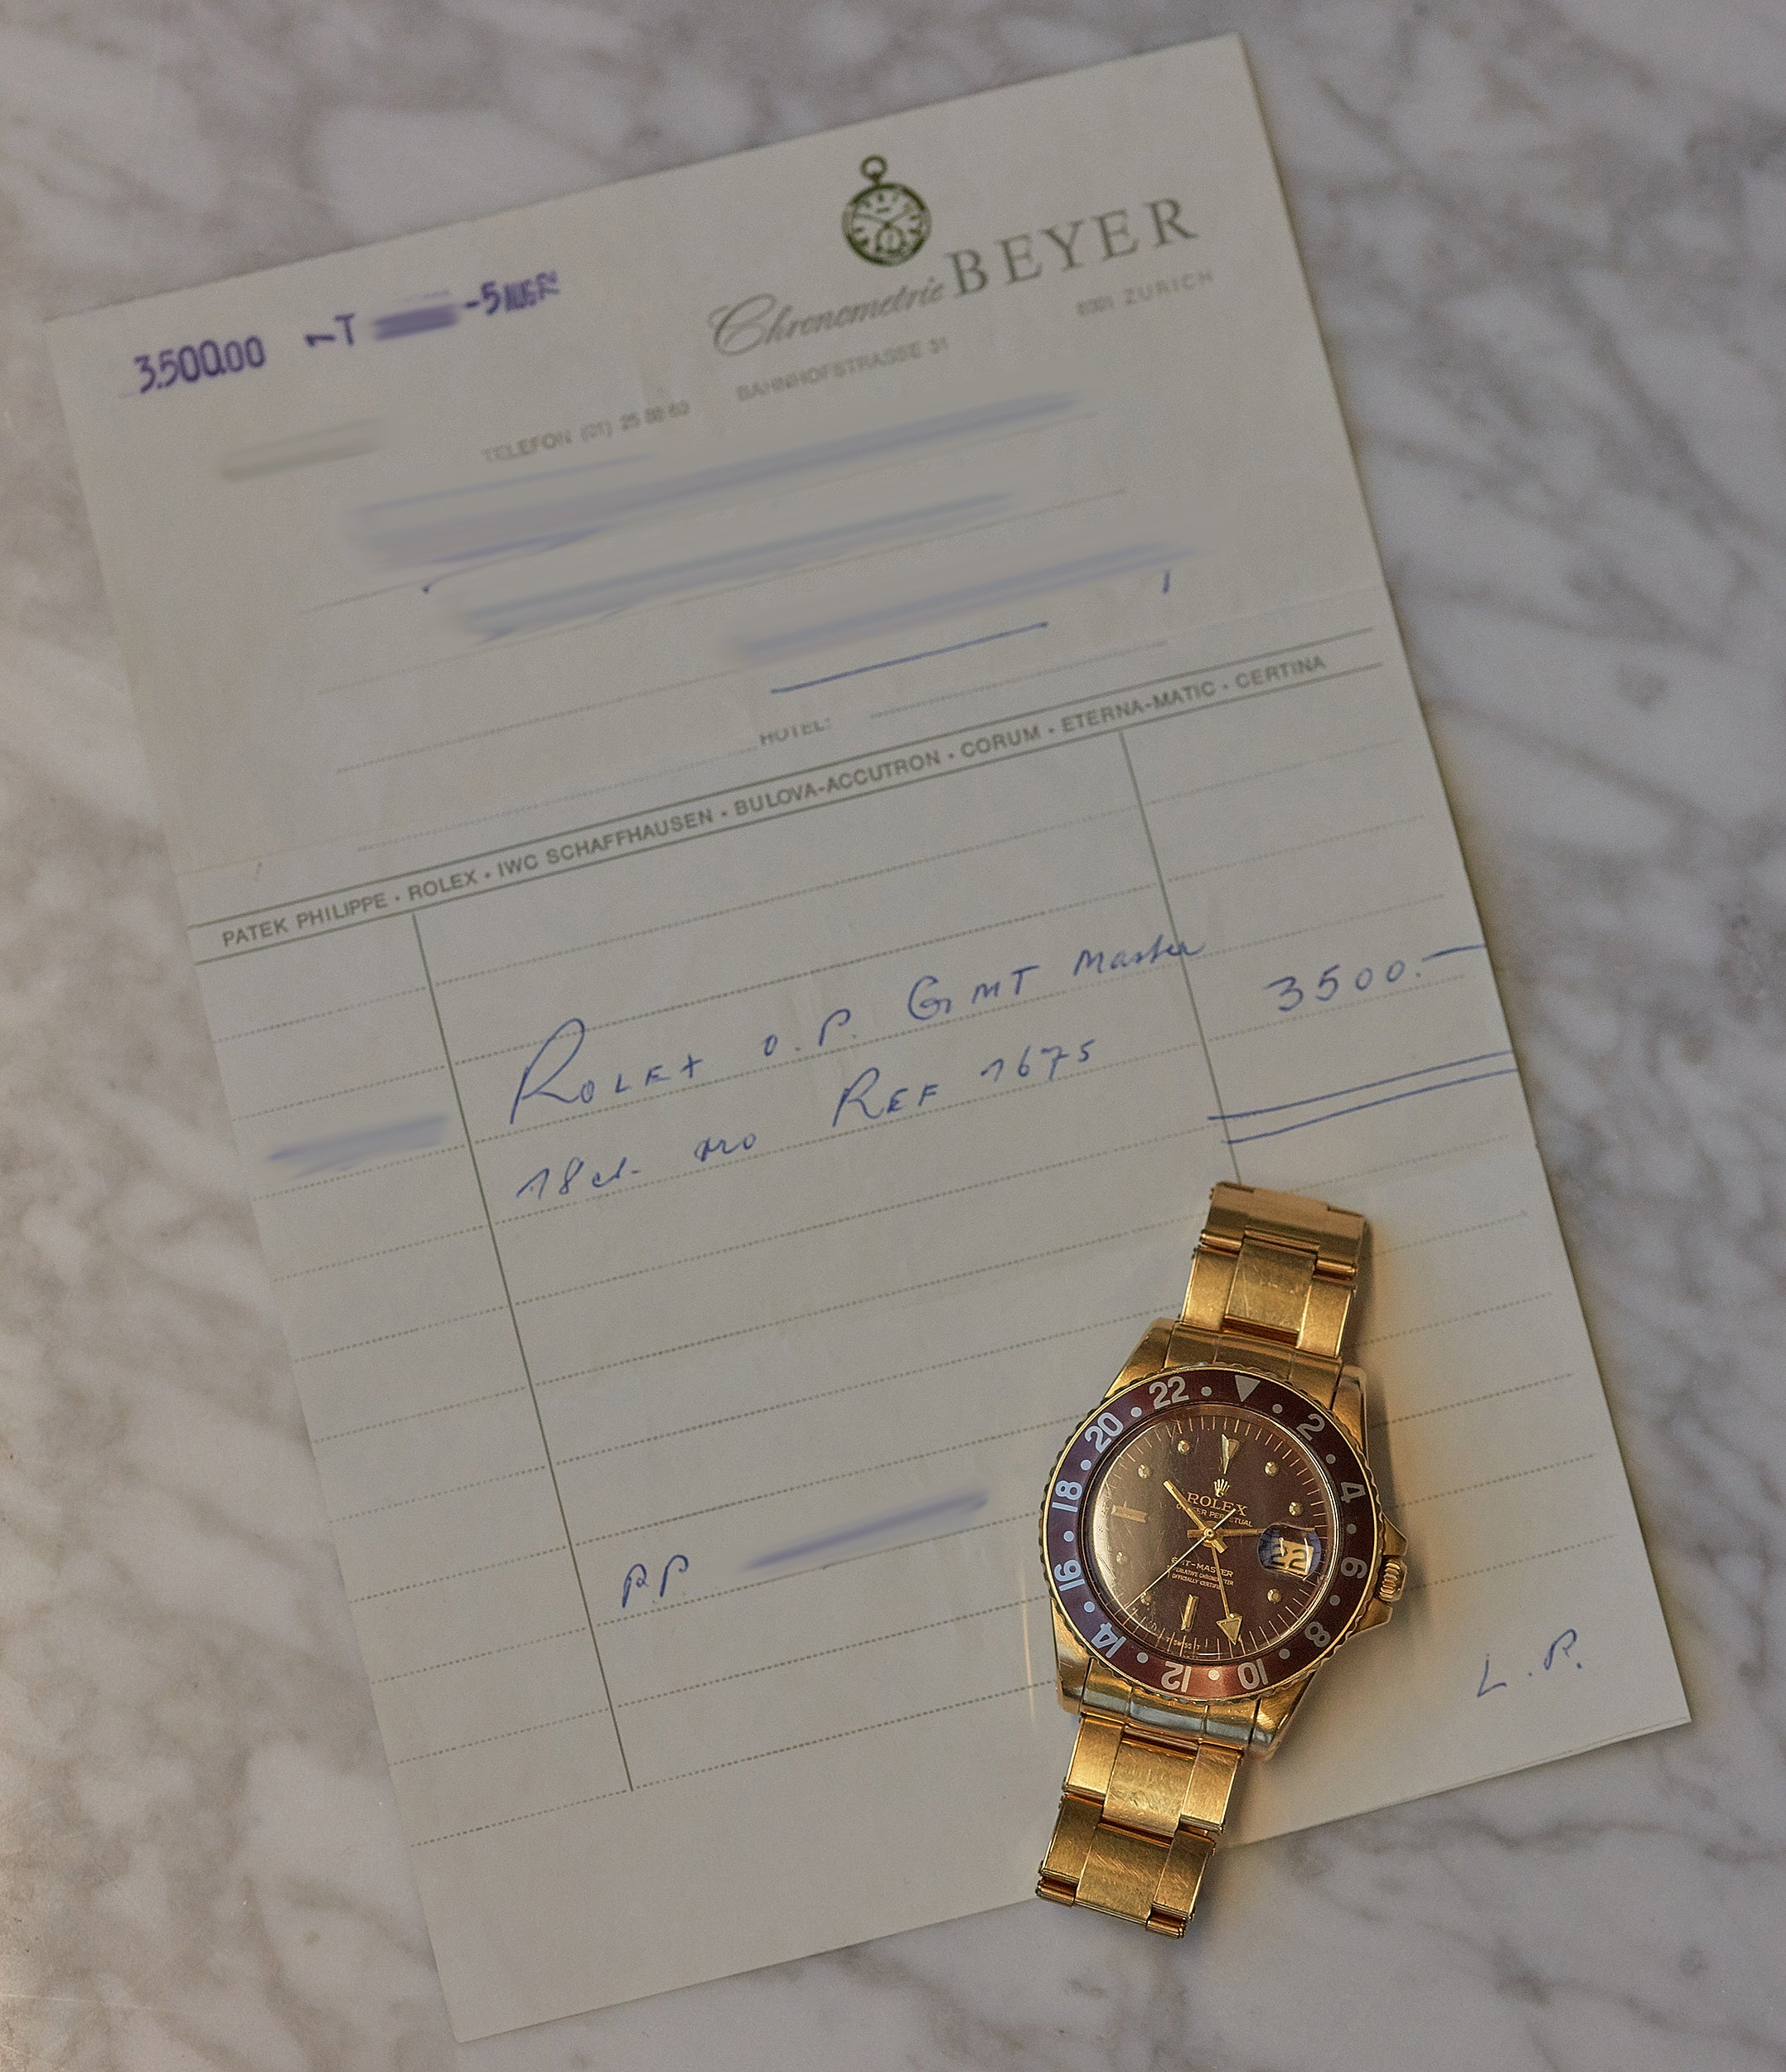 original purchase receipt 1675/8 Rolex GMT-Master Concorde yellow gold watch full set for sale online at A Collected Man London UK specialist of rare watches